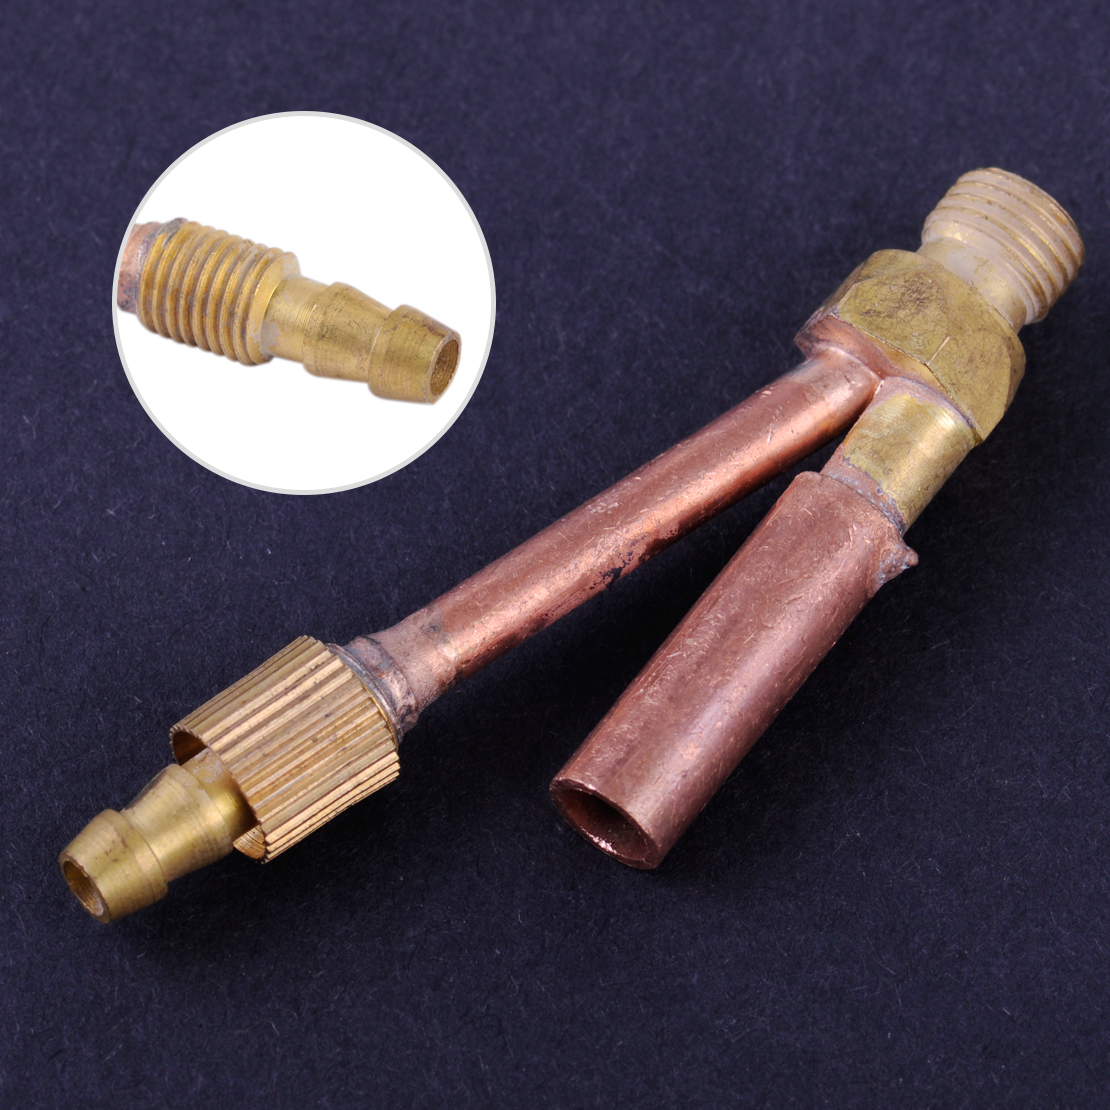 LETAOSK TIG Welding Torch Gun Cable Connector Gas Electricity Separation Fit For WP9 WP17Accessories